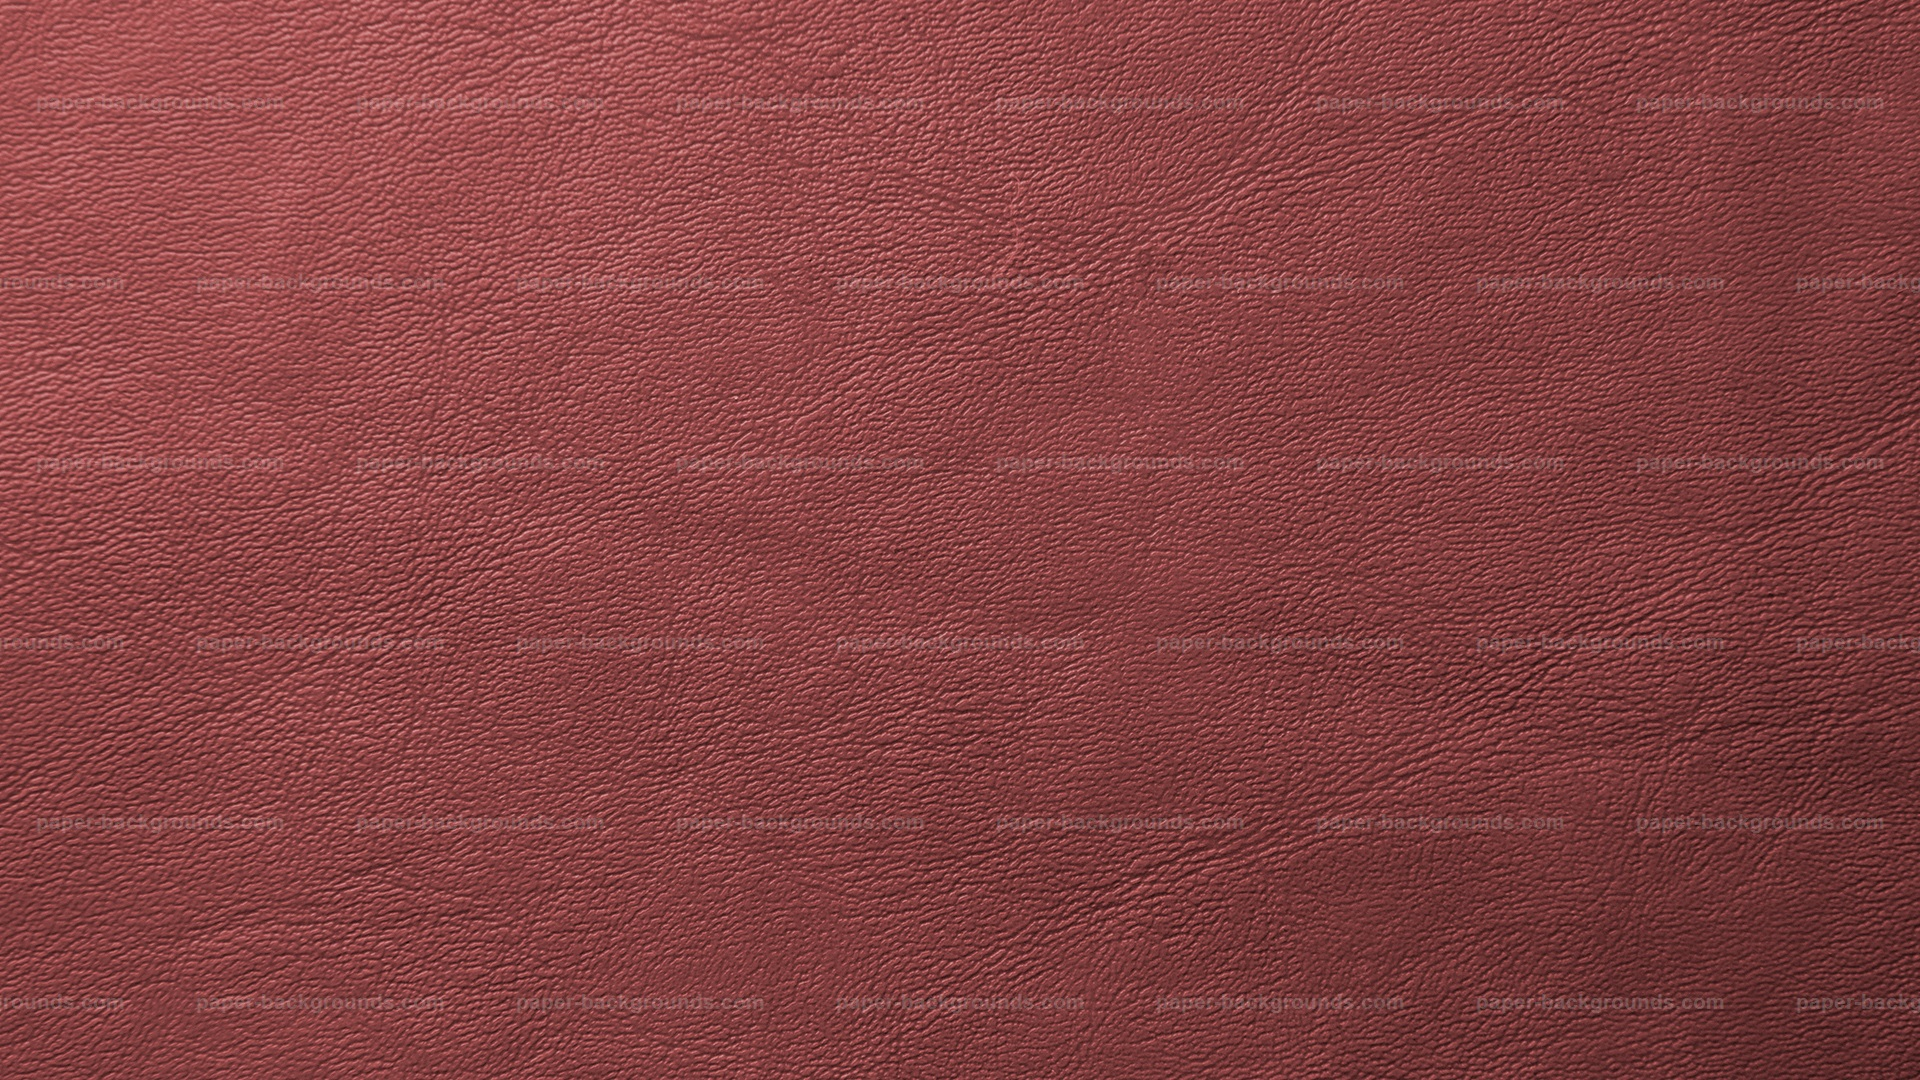 Red Leather Texture HD